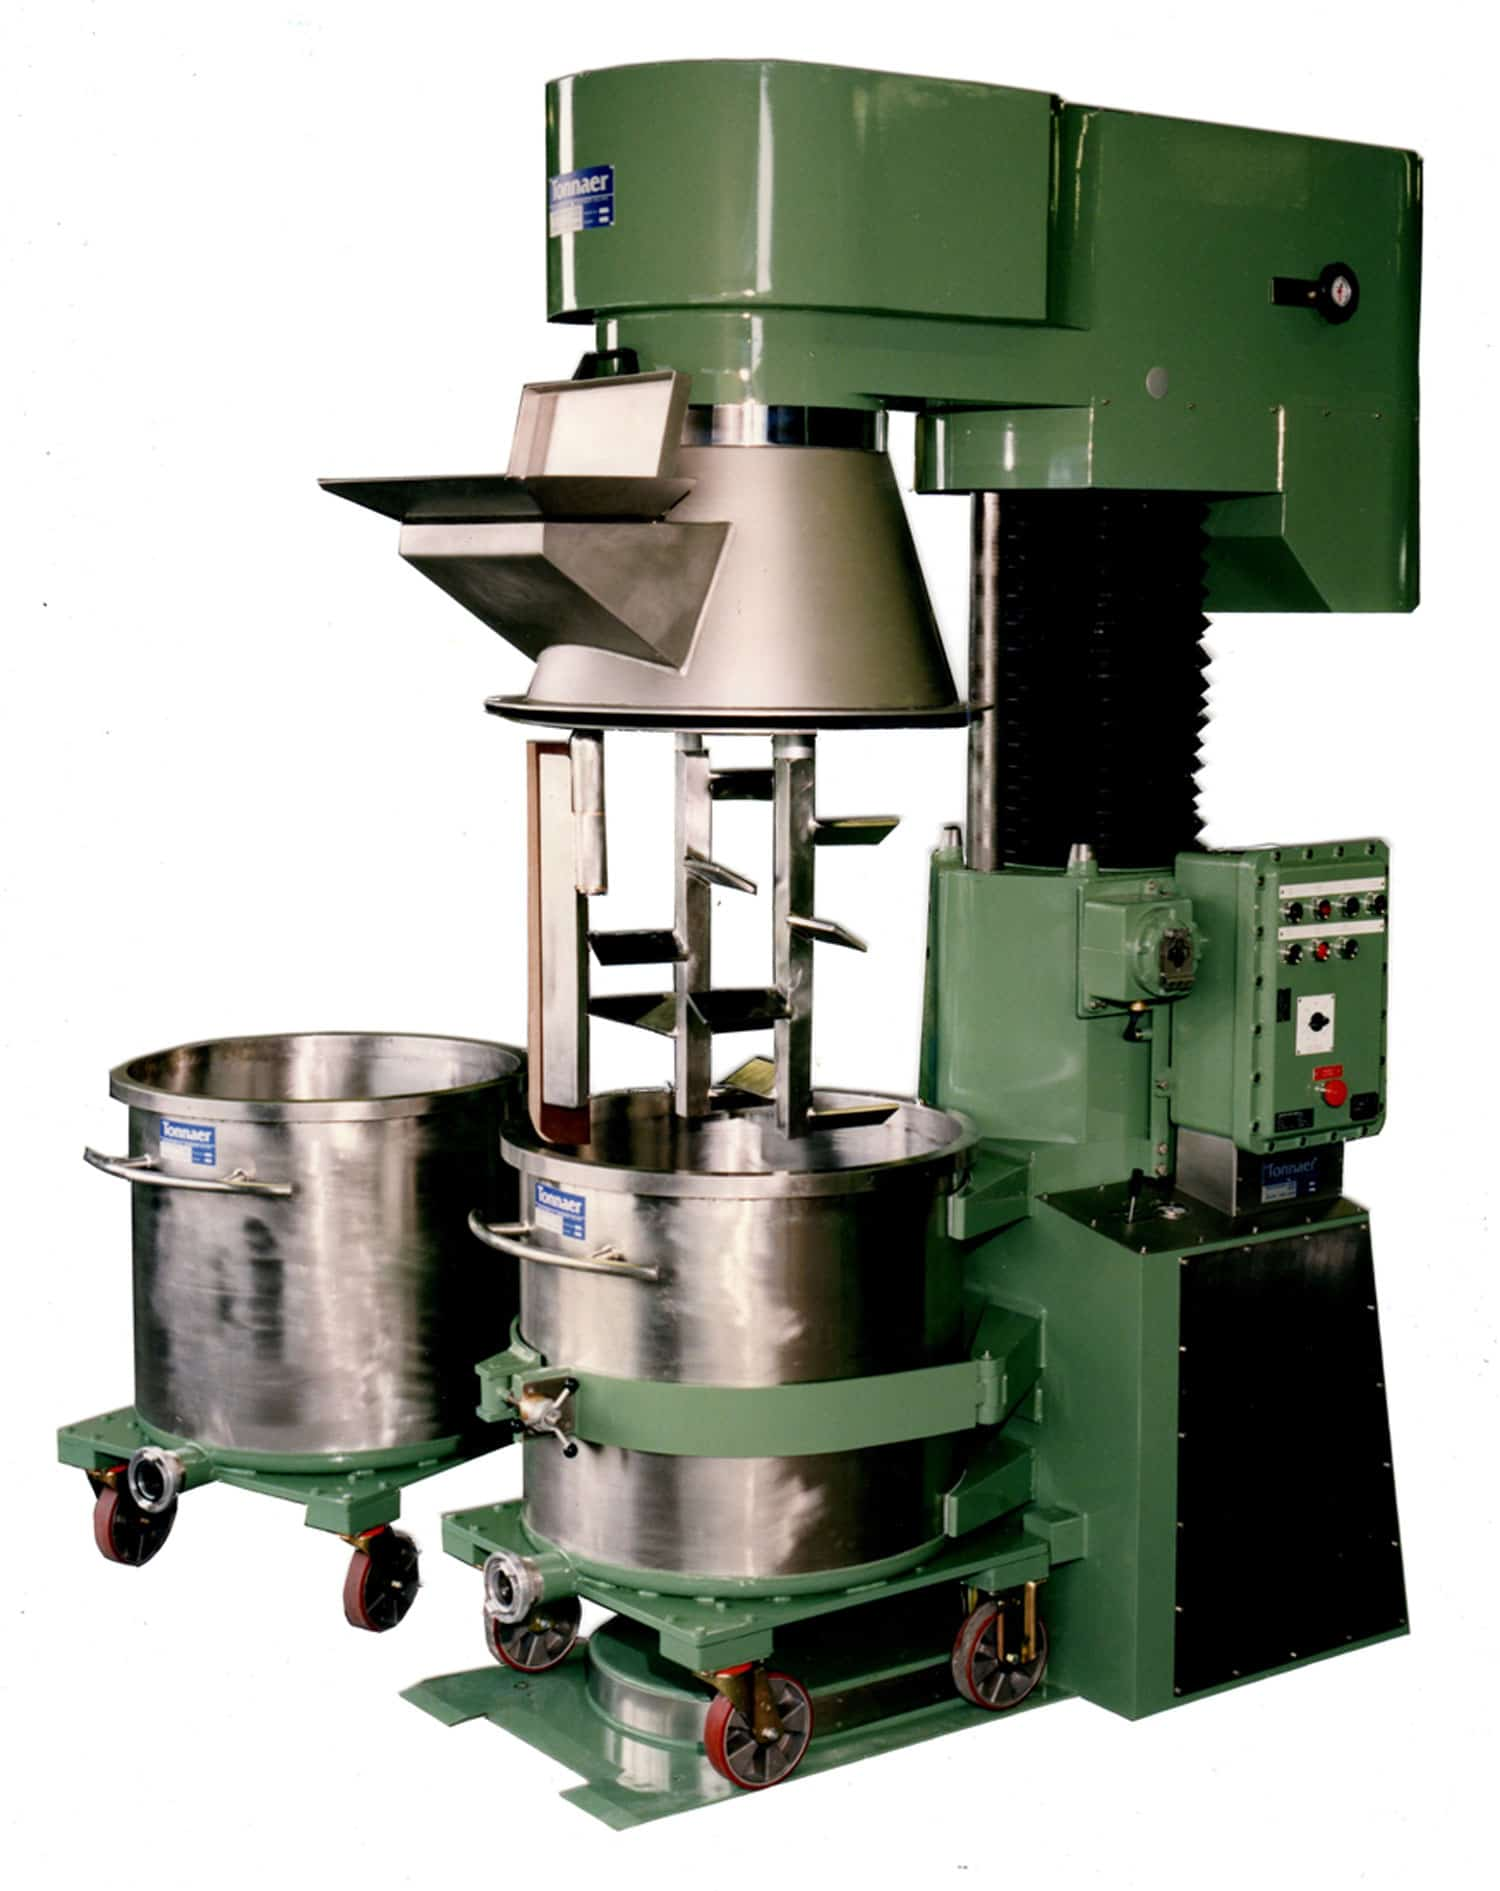 Planetary kneader 750-1000 litres - Tonnaer Mixing Systems